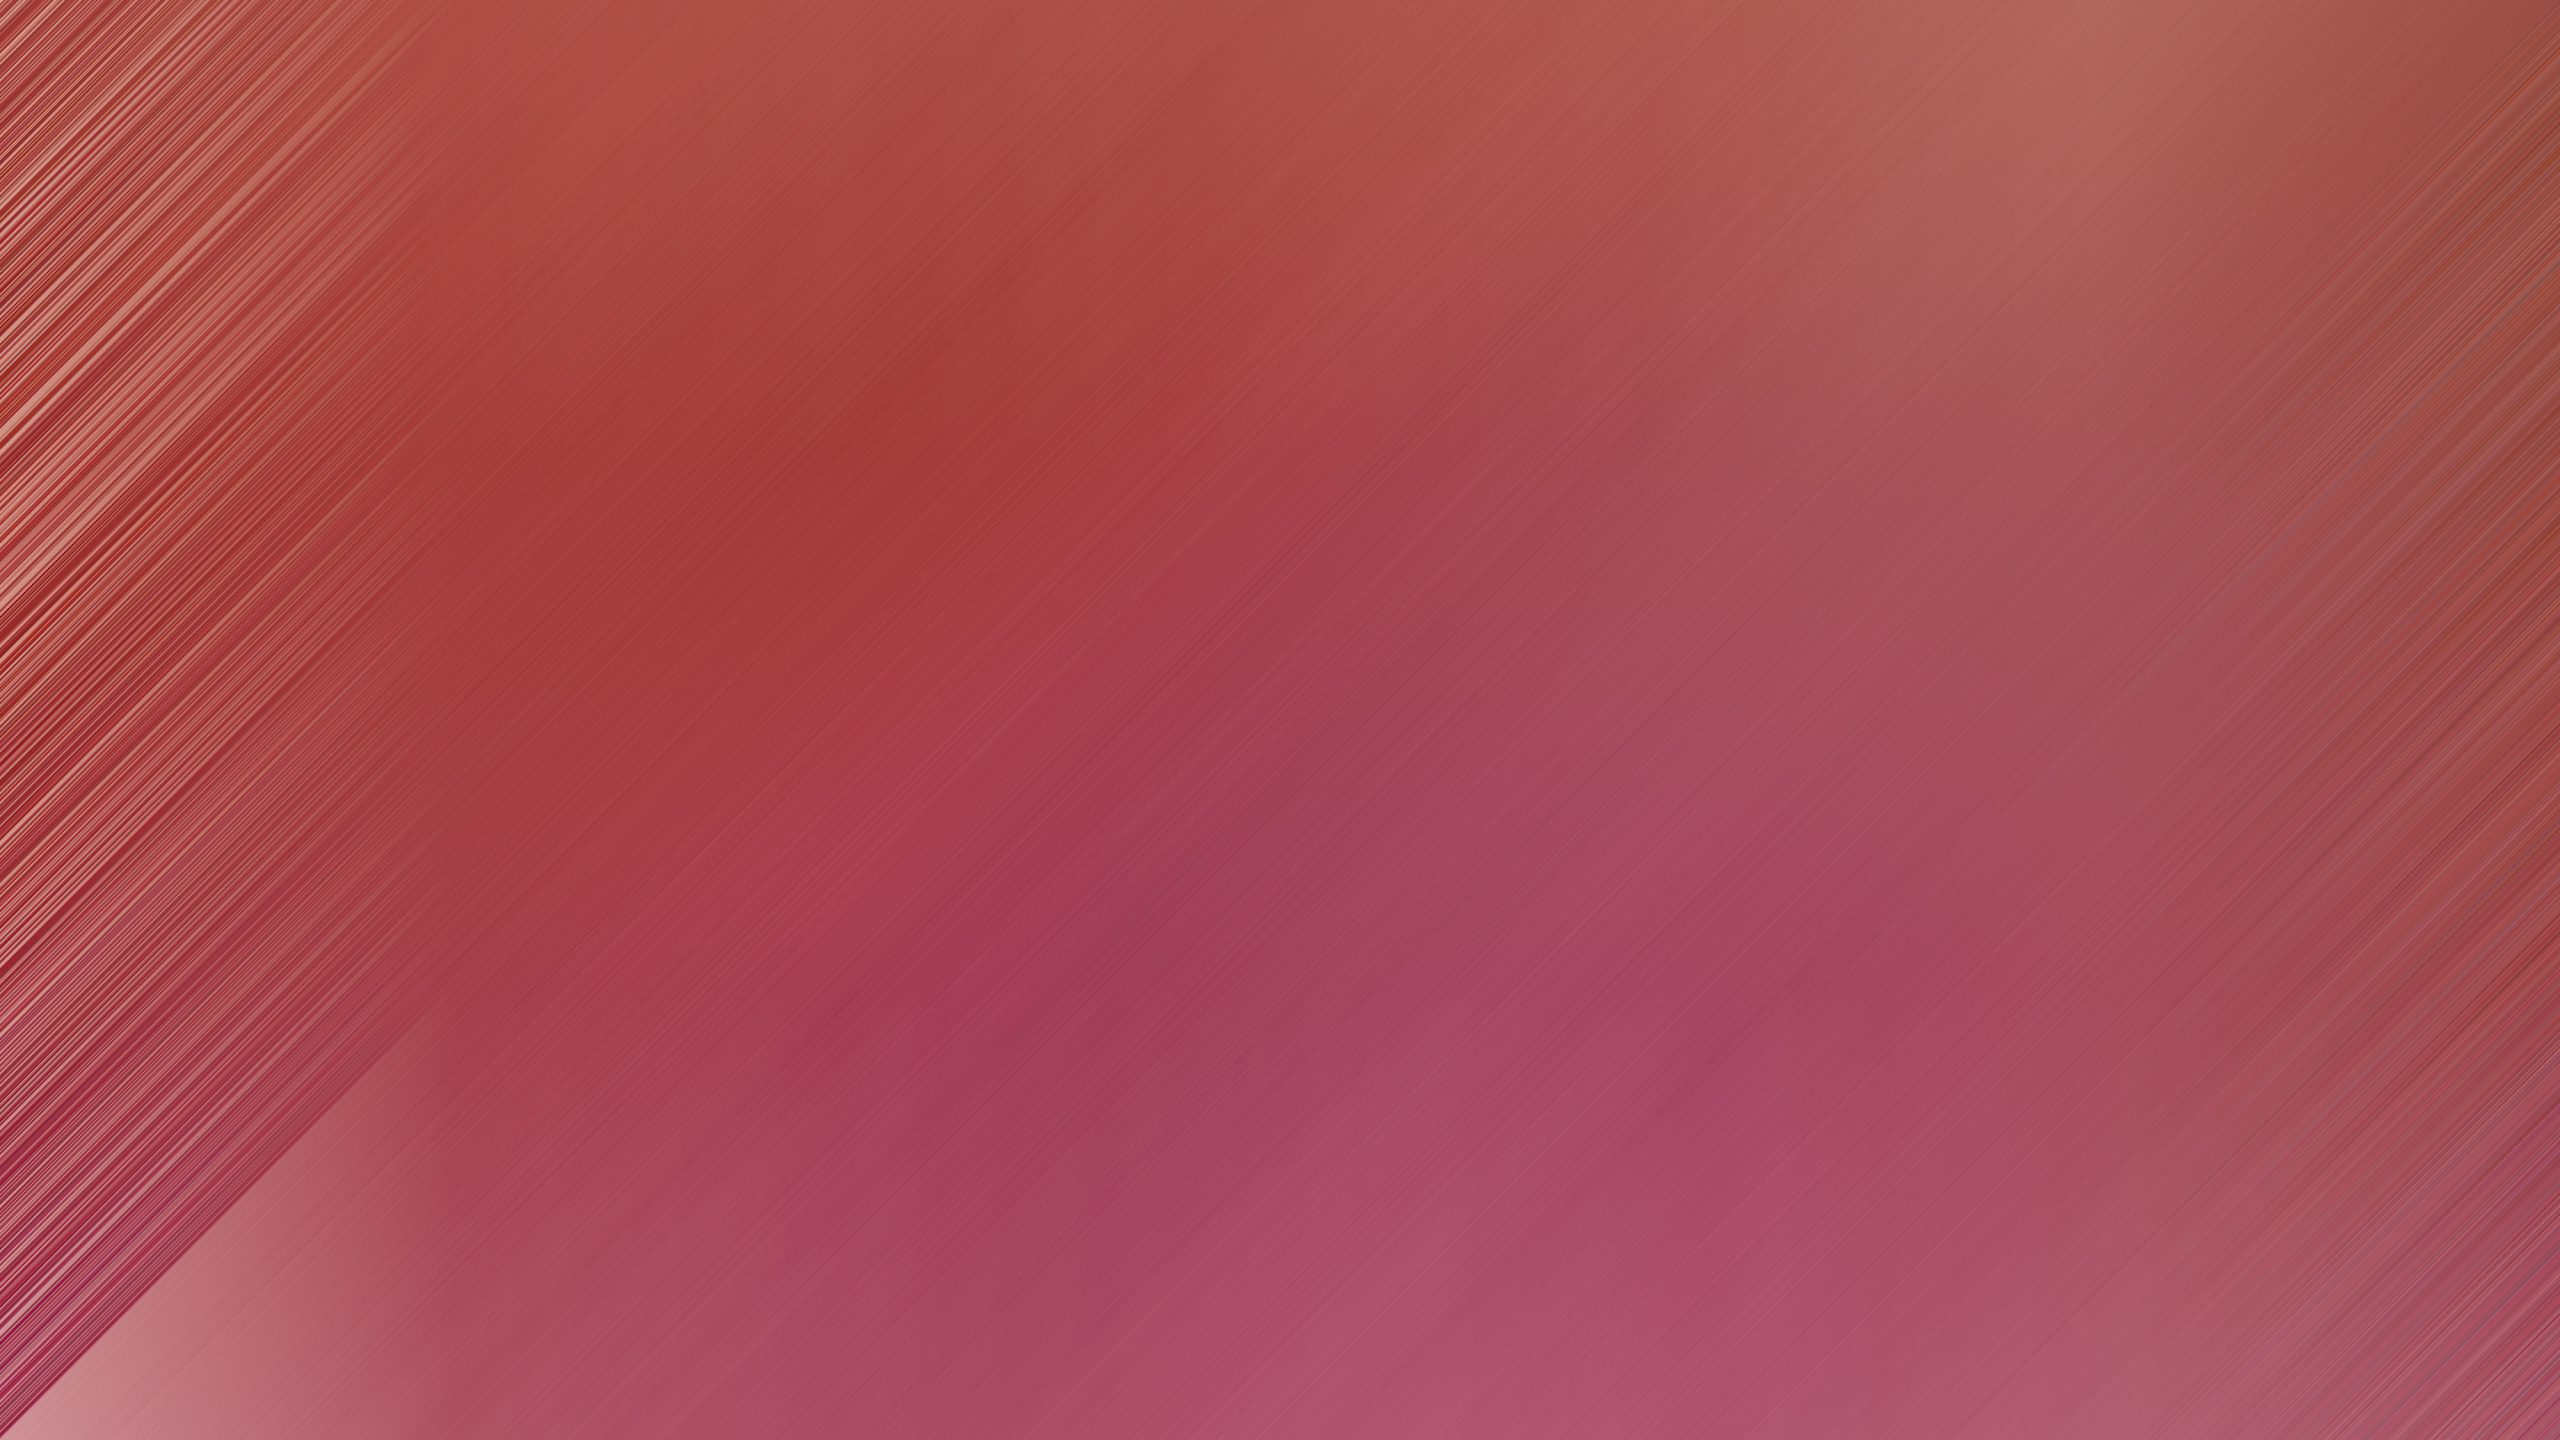 pink-pattern-abstract-background-wallpaper